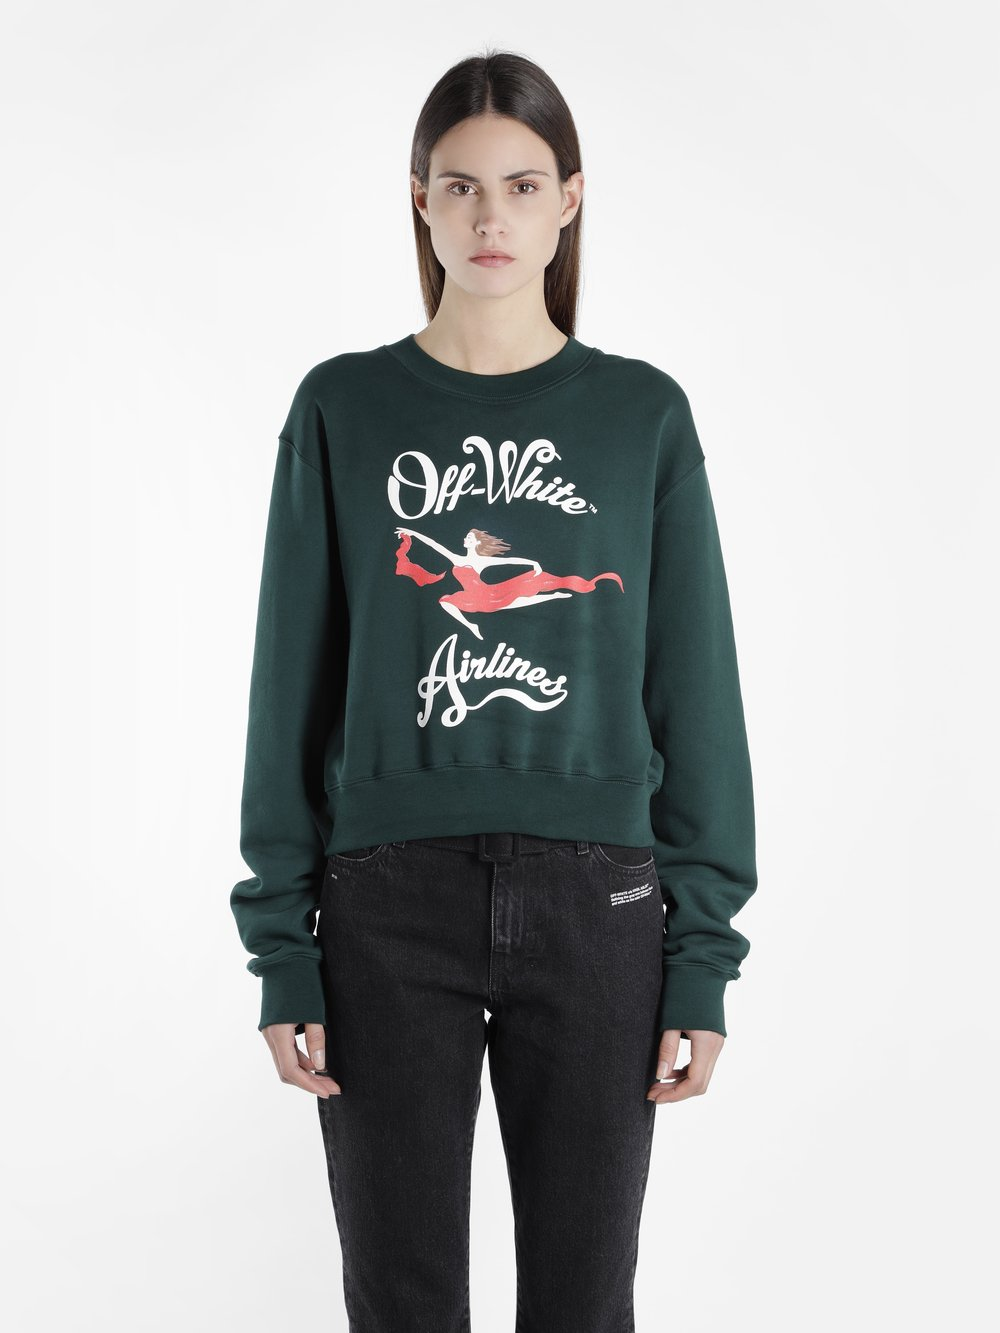 OFF WHITE C/O VIRGIL ABLOH WOMEN'S GREEN OFF AIRLINES CREWNECK SWEATER